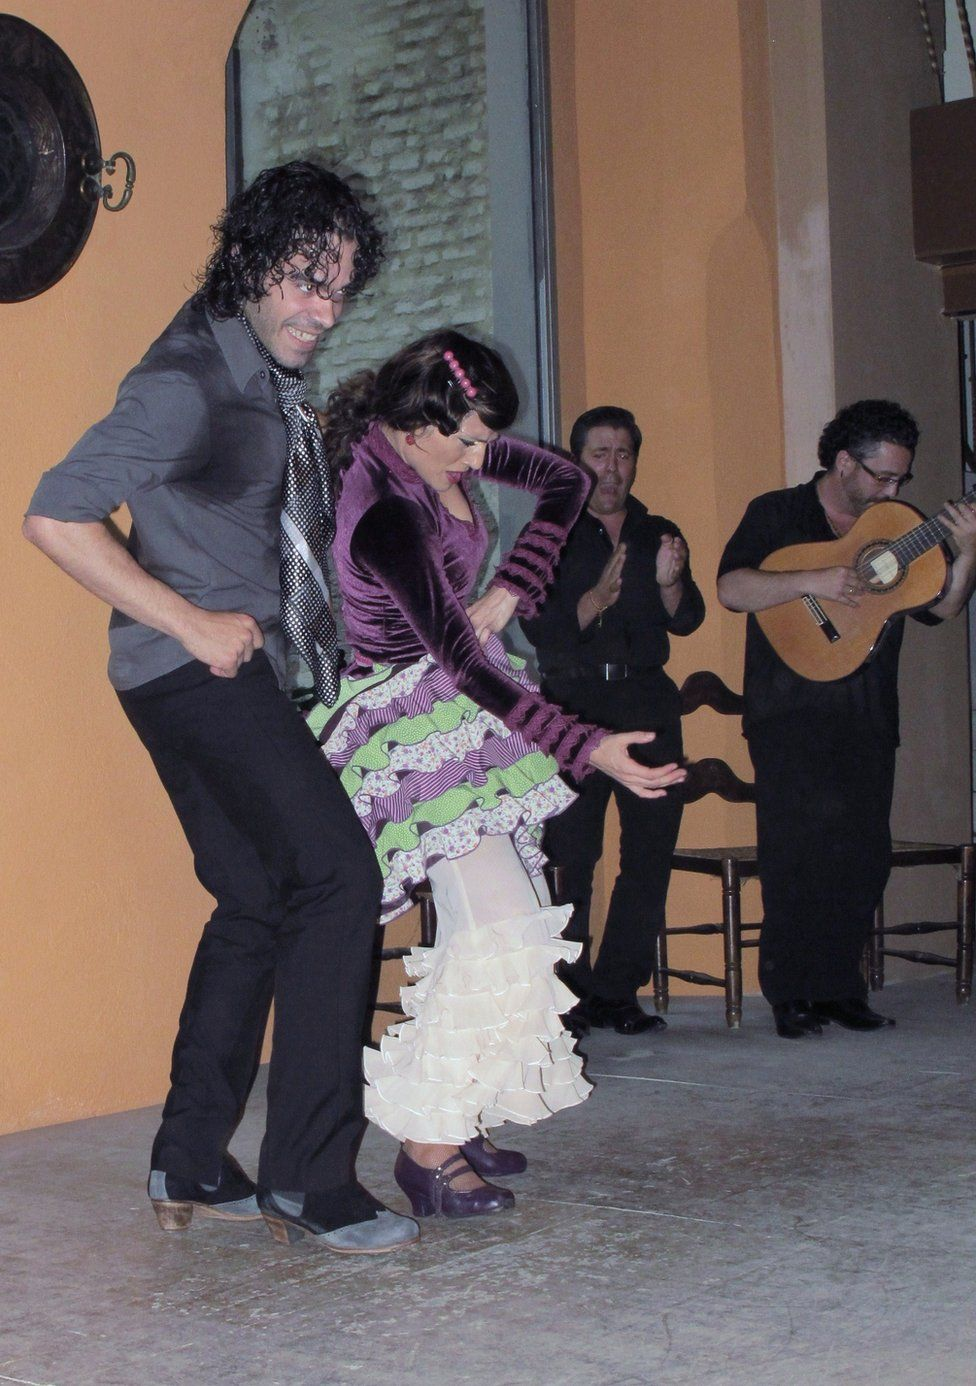 Two performers dance the flamenco